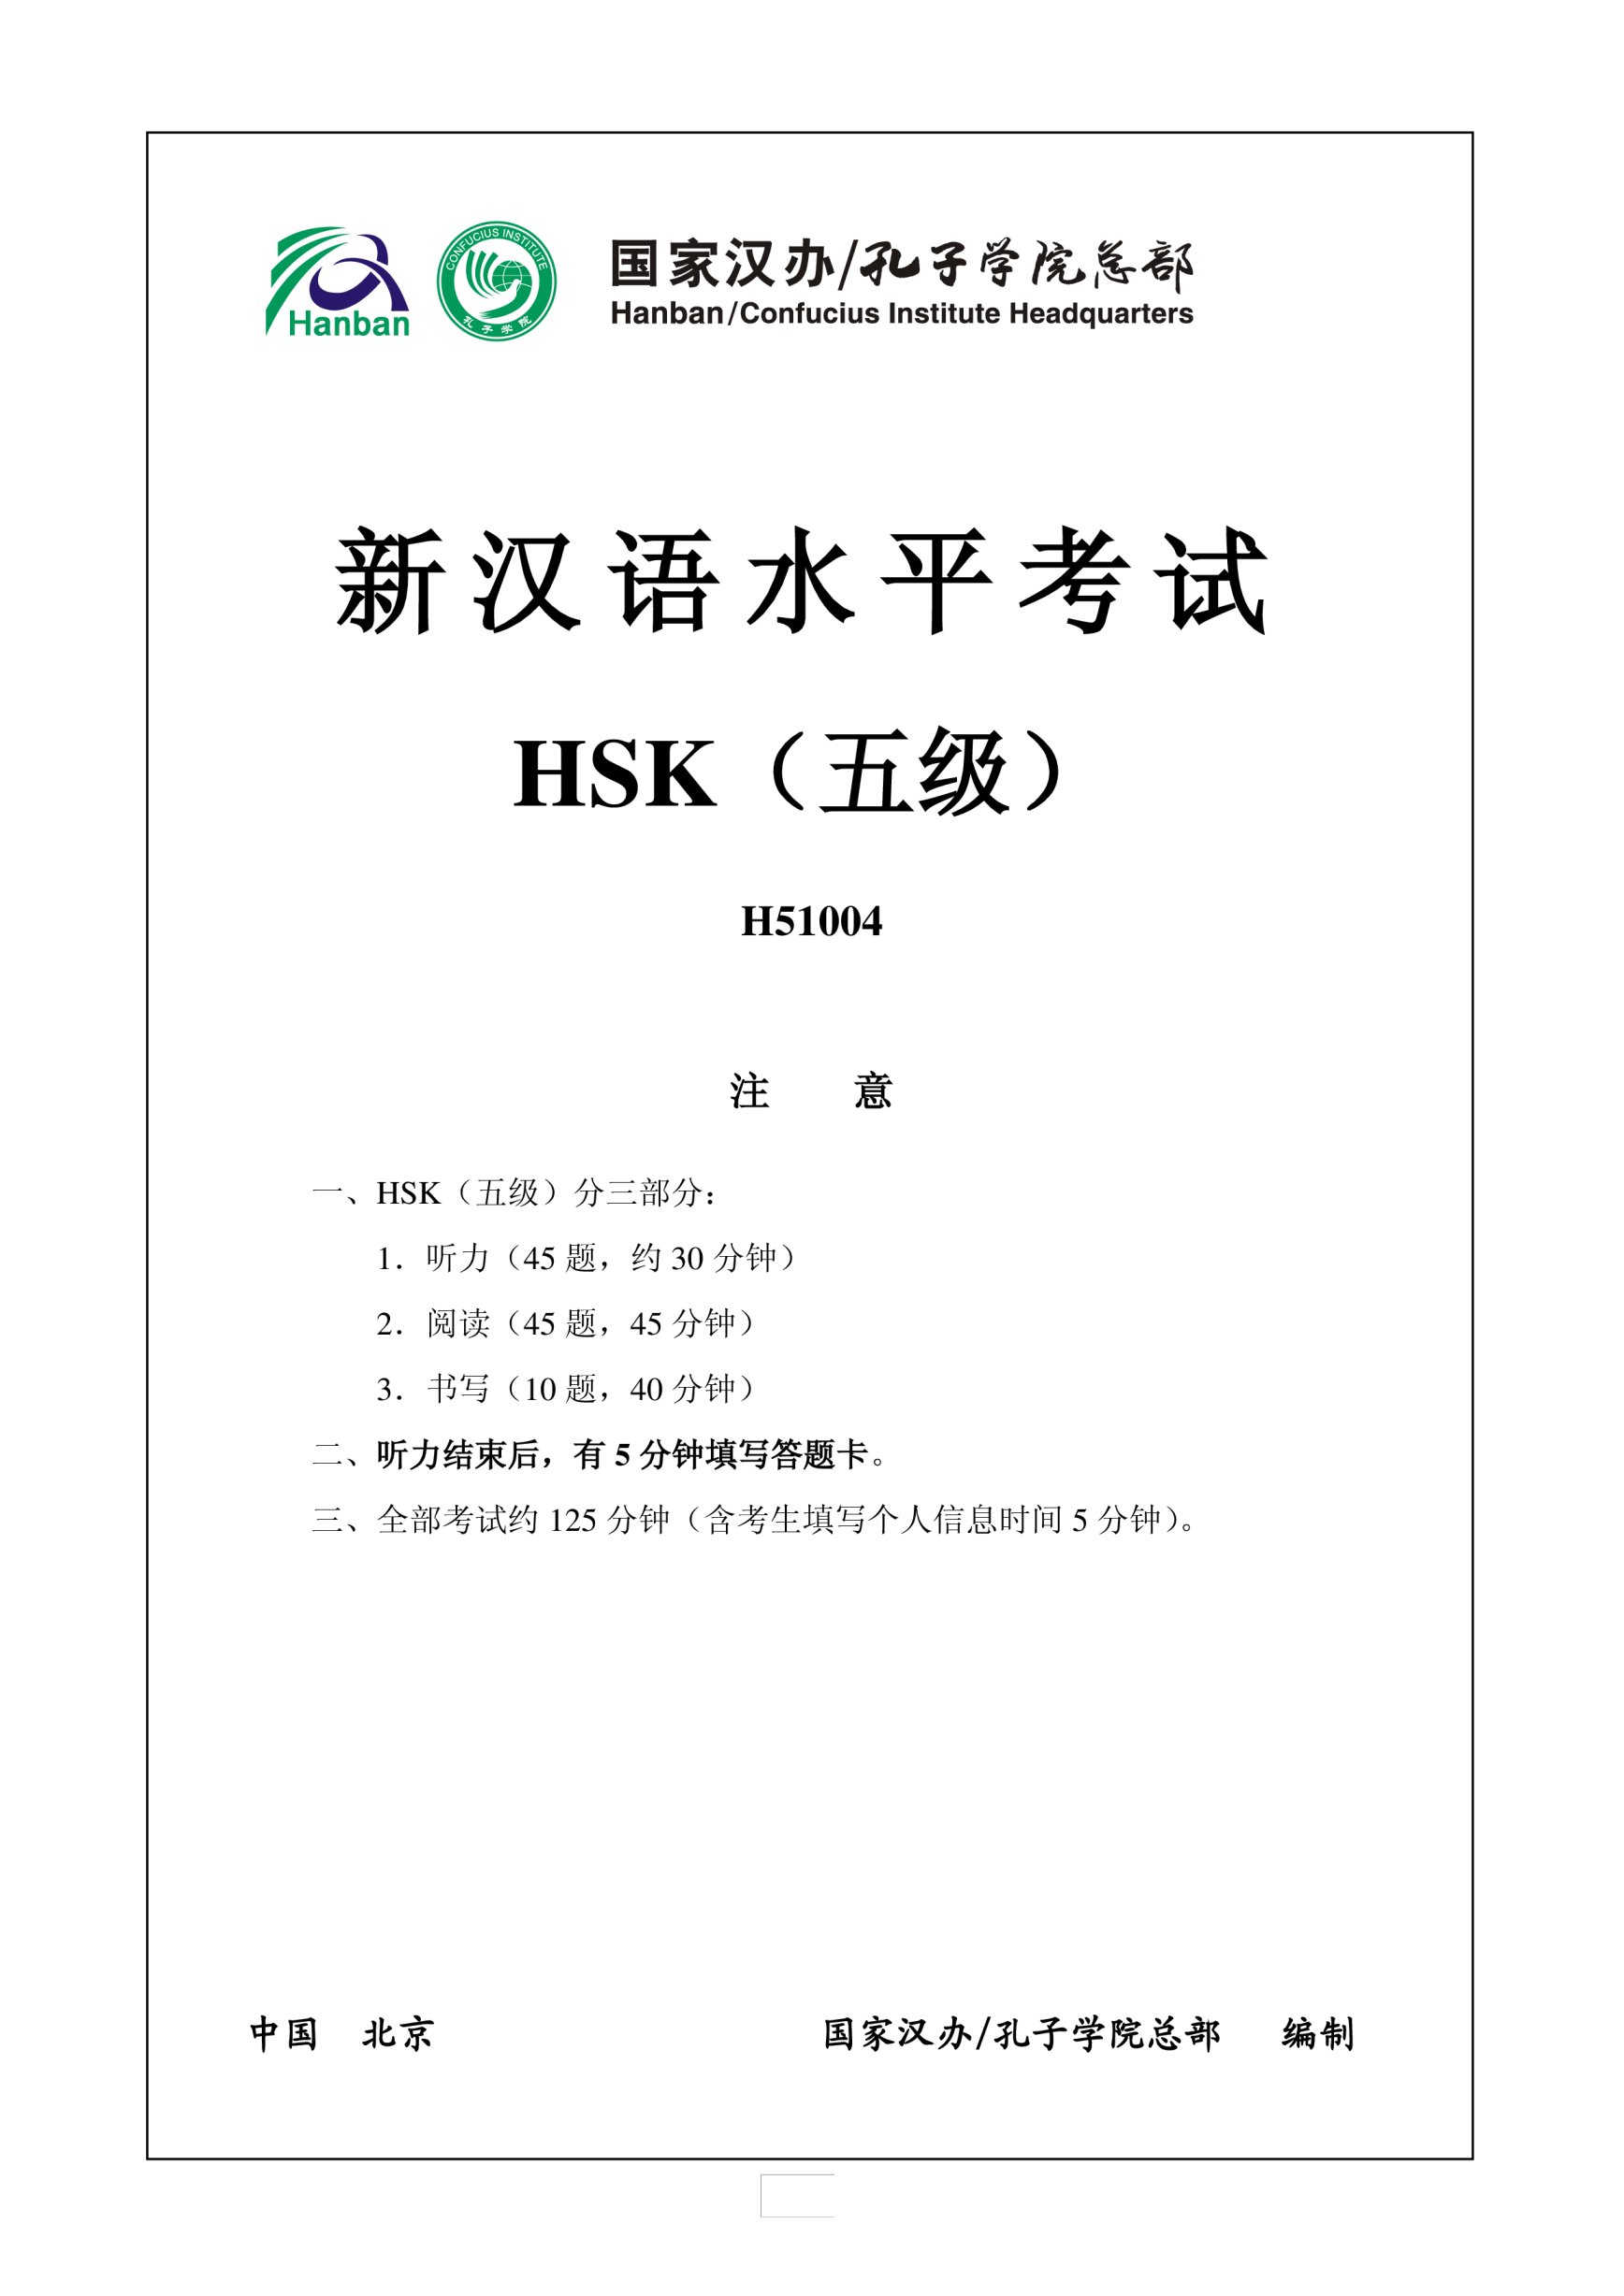 template preview imageHSK5 Chinese Exam incl Audio and Answers # H51004